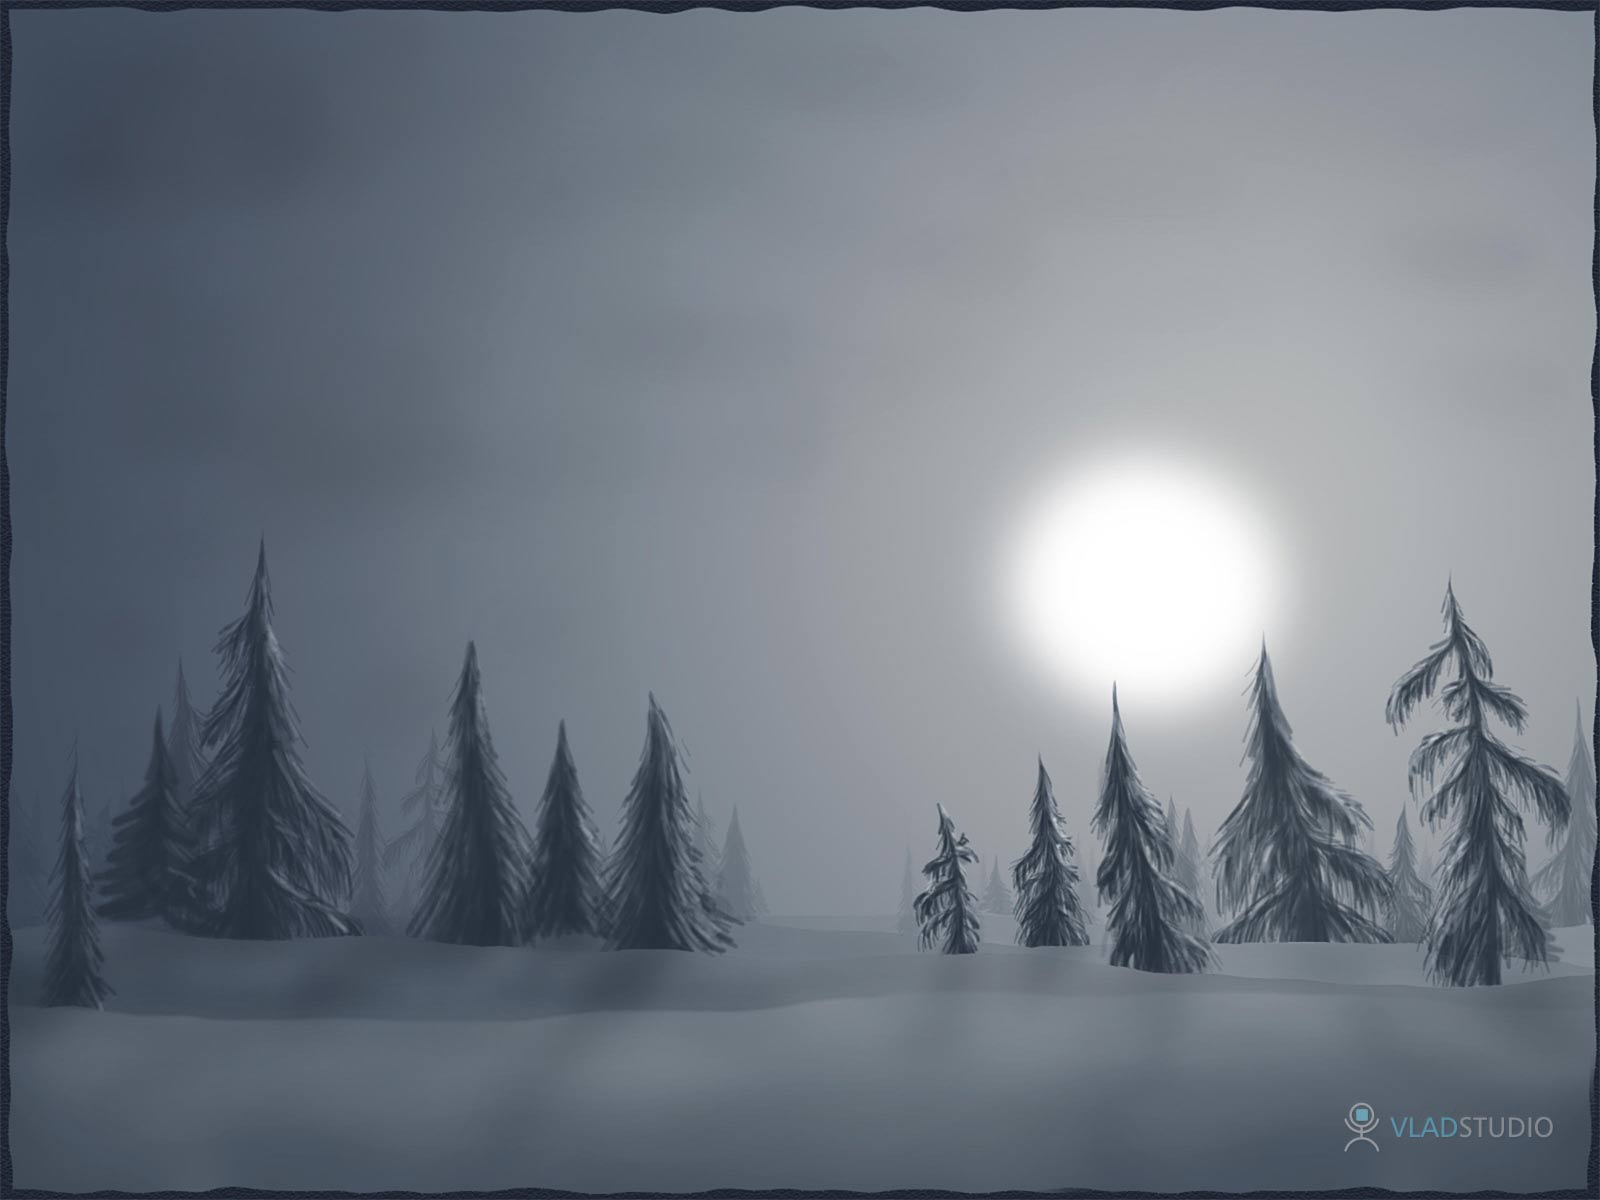 Calm Winter Backgrounds